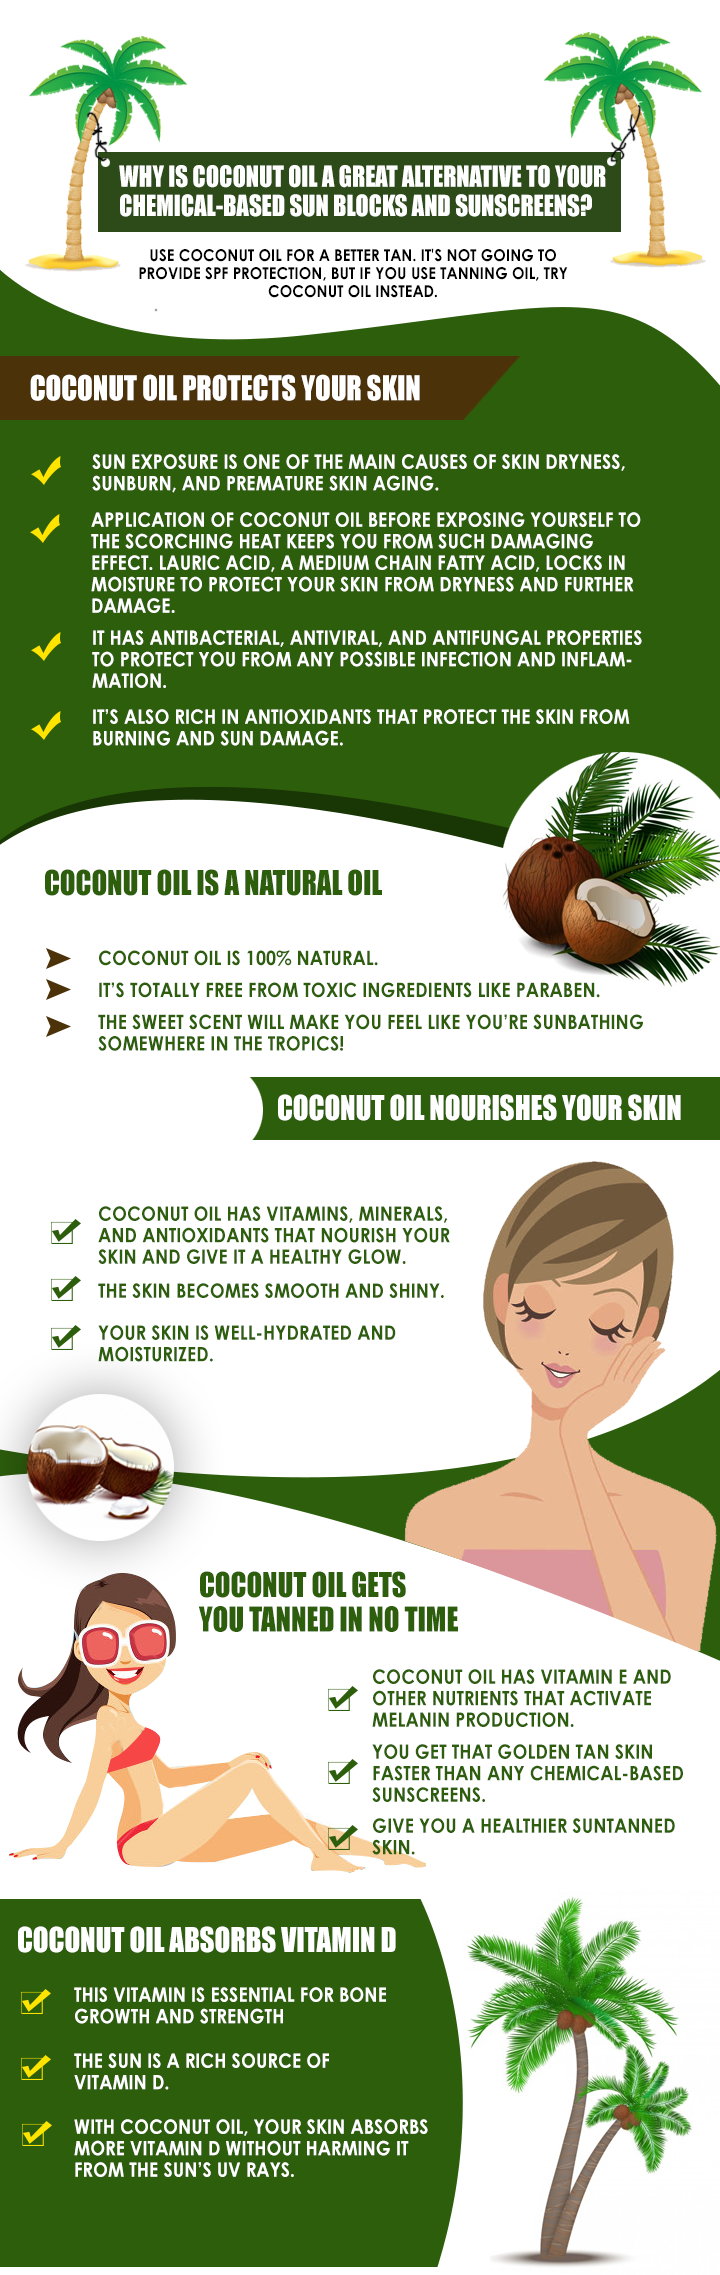 image of Tan with Coconut Oil